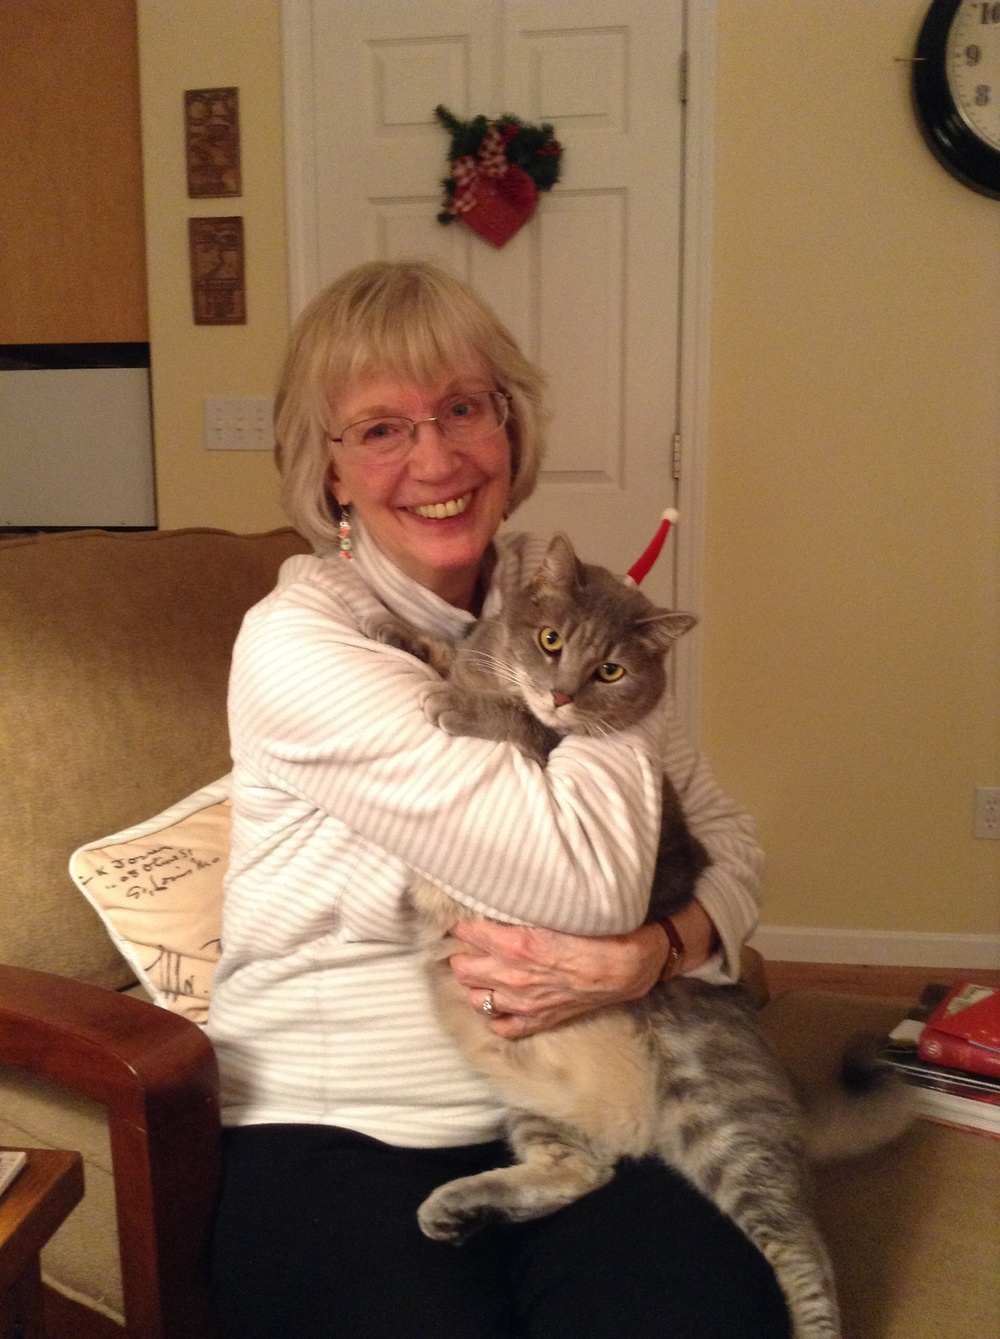 Ina Bicknell loans her tiny Santa fascinator to her cat Oscar.